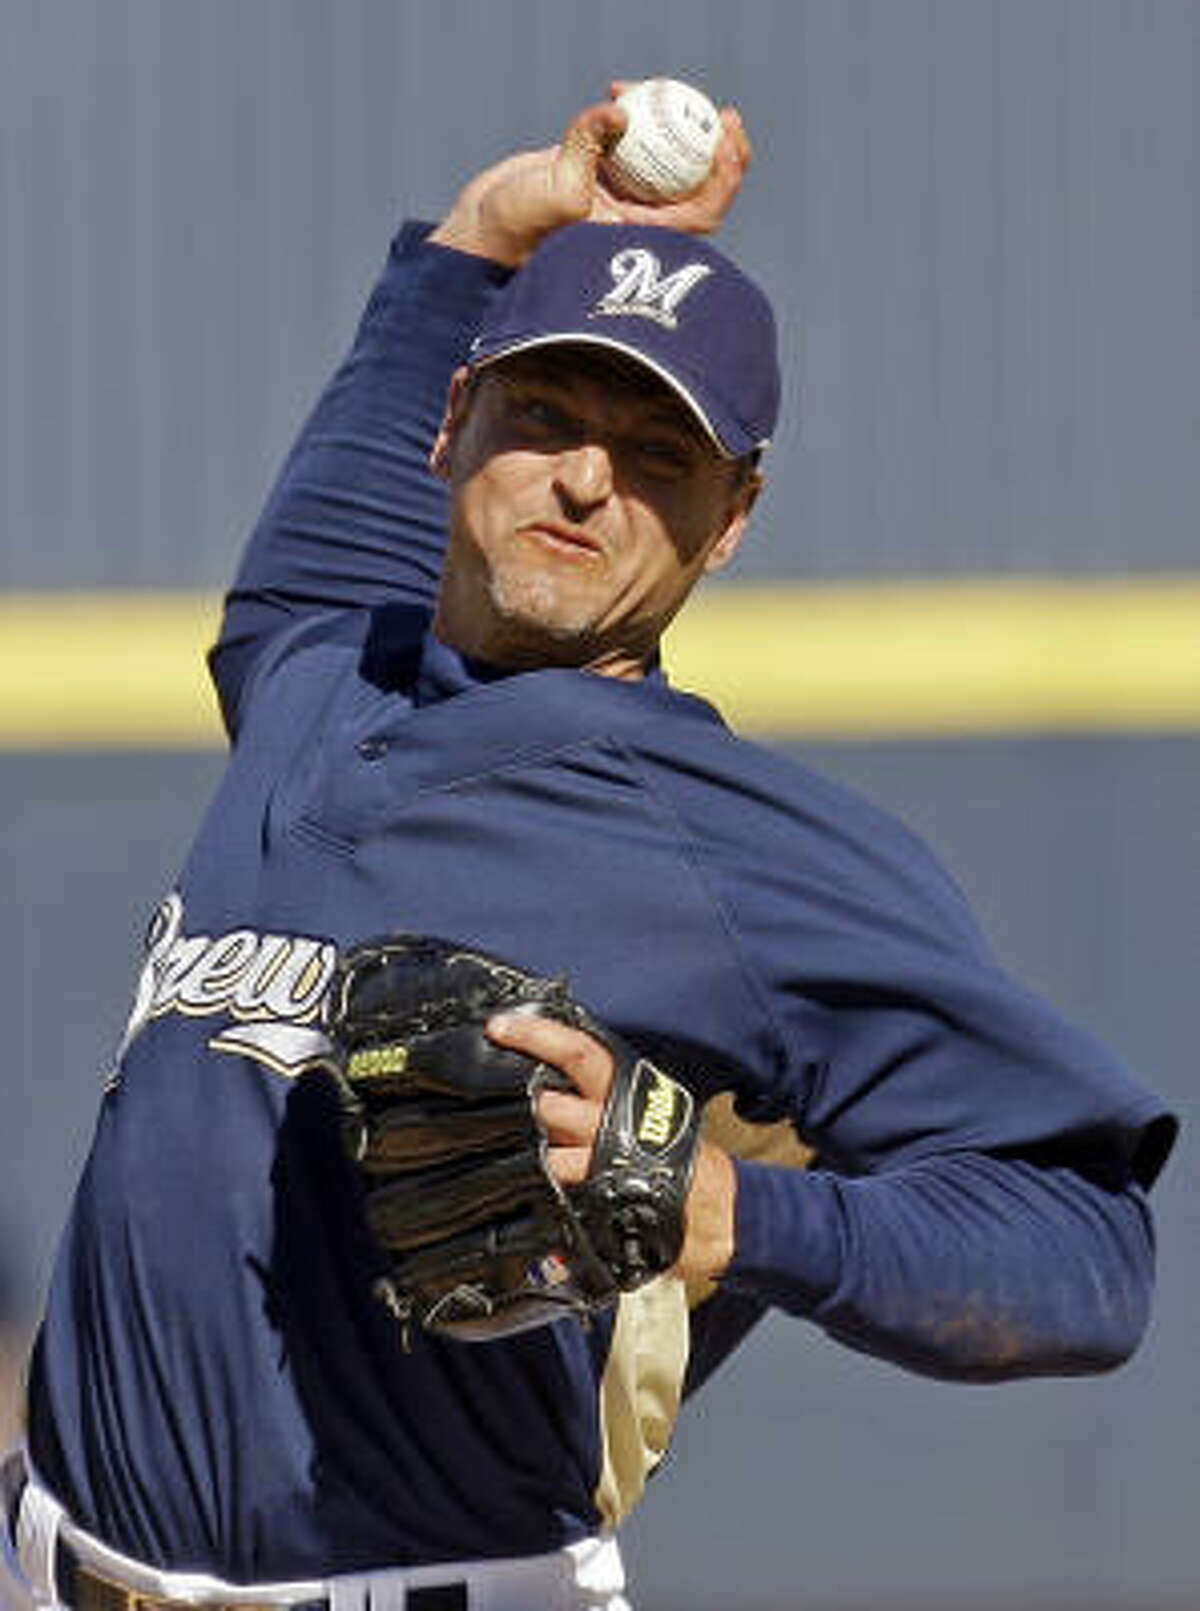 Trevor Hoffman pitched a scoreless seventh inning in his first appearance with Milwaukee, and the Oakland Athletics tied the Brewers 3-3 in 10 innings Wednesday.